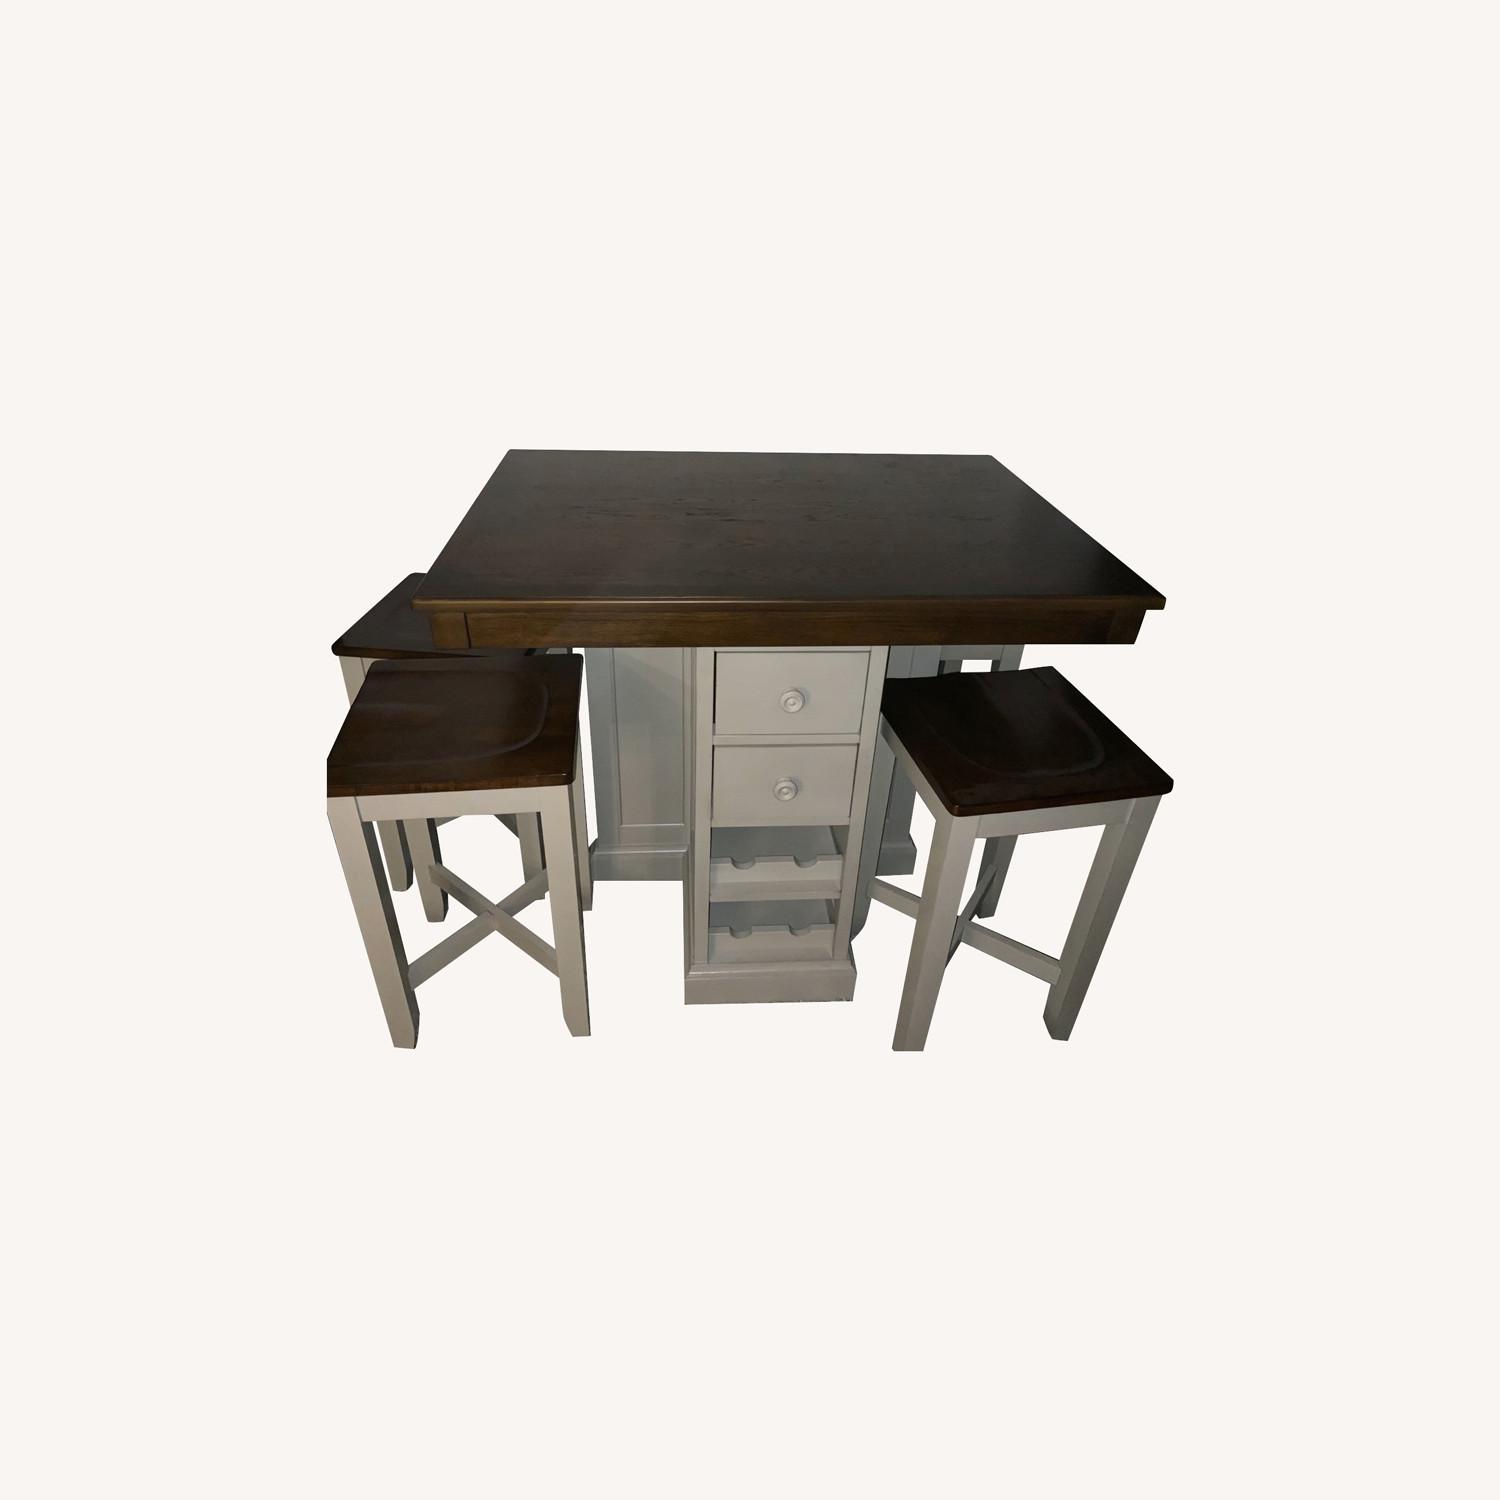 Raymour & Flanigan 4 Seat High Dining Table w/ Storage Space - image-0